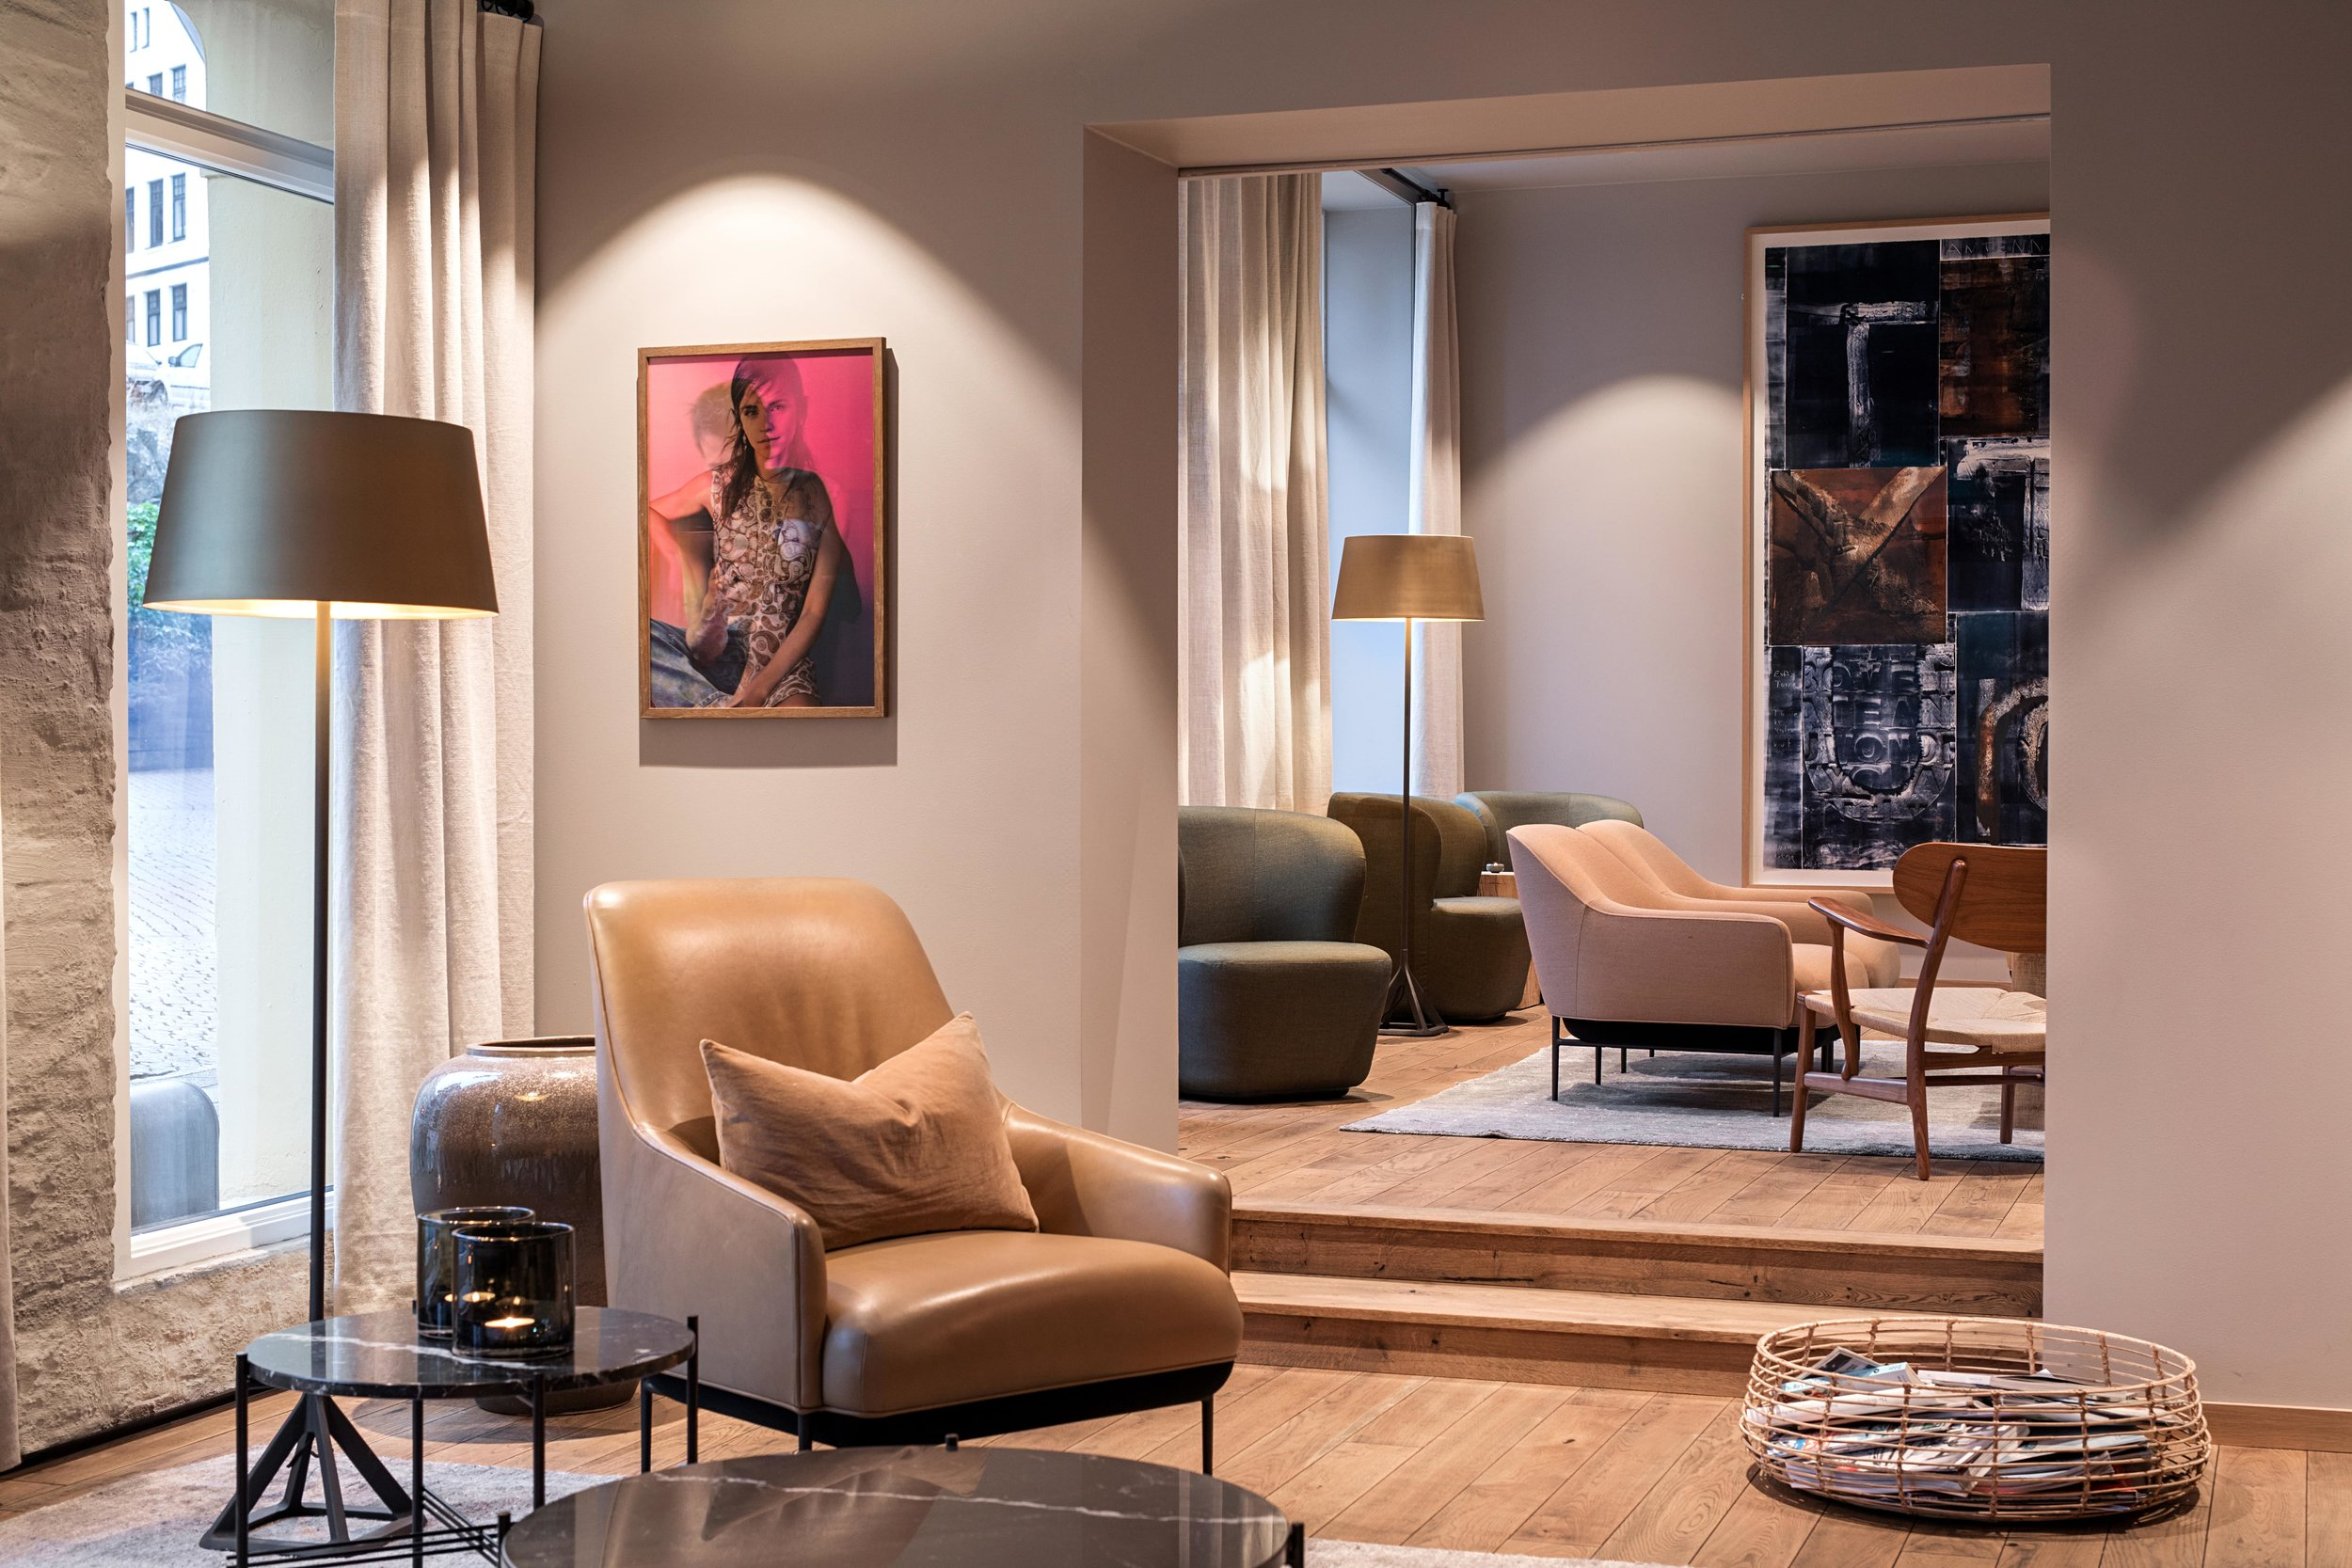 Hotel Brosundet Ålesund Norway, lounge with Scandinavian furniture and danish interior design by GARDE. Mads Emil Garde